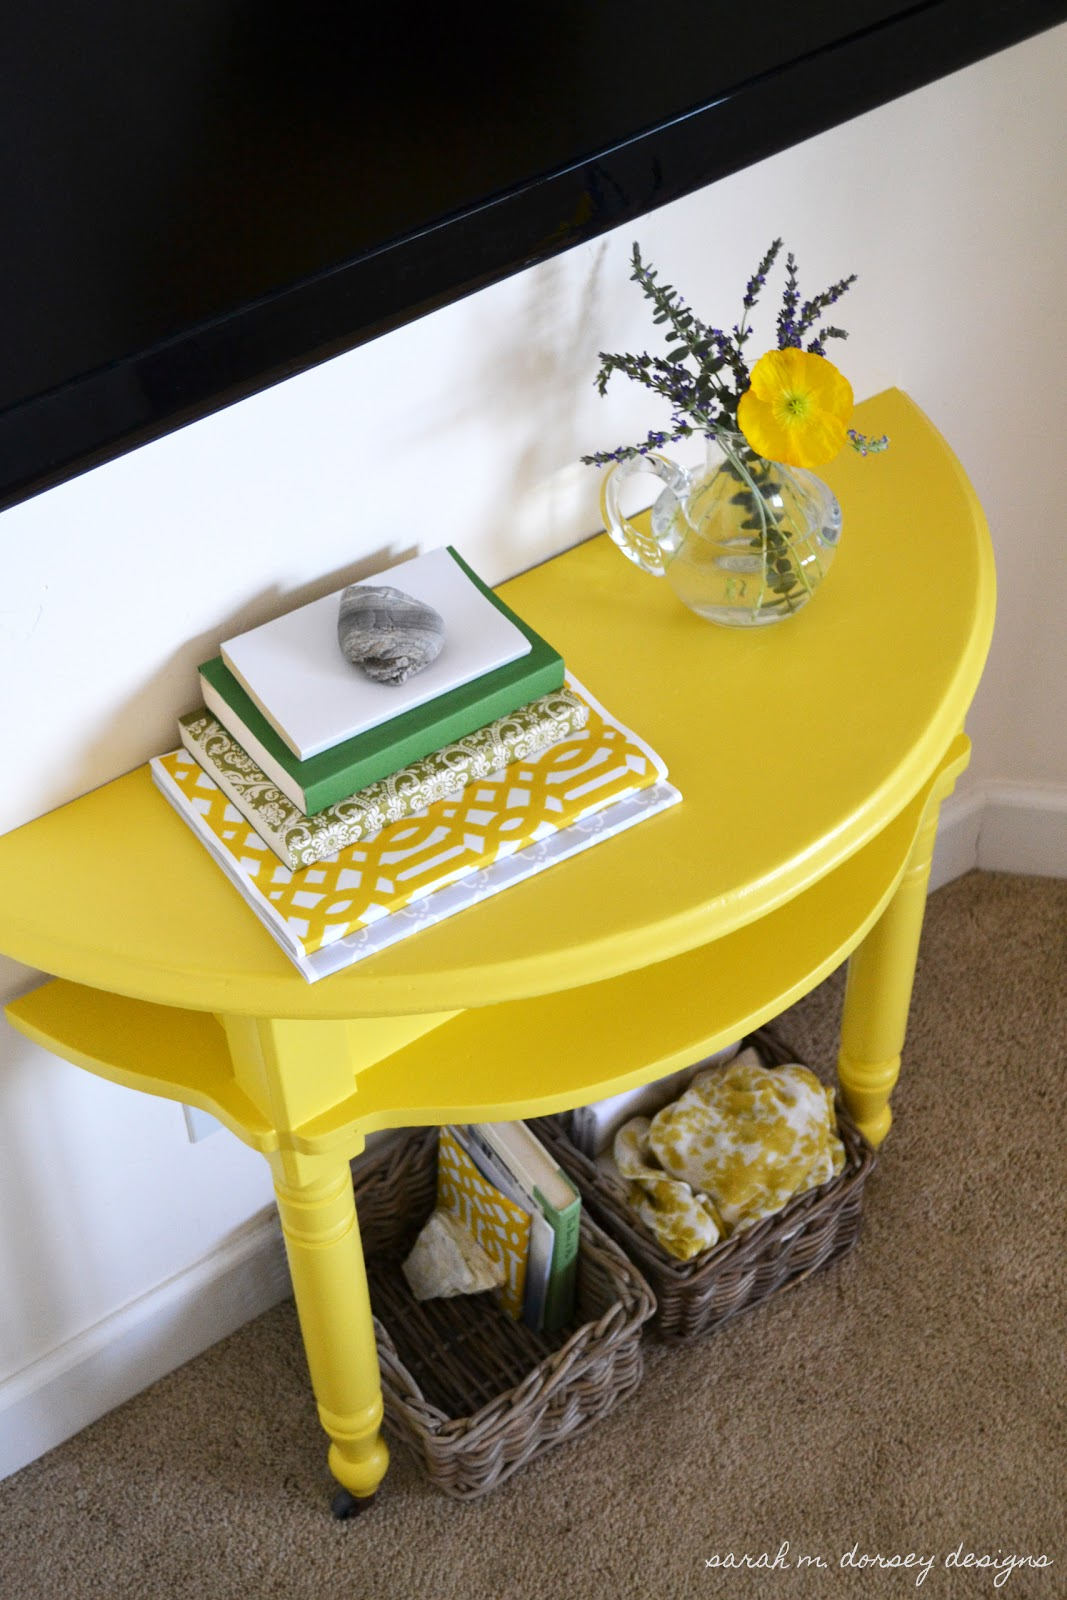 Wood Panel Behind Tv: Sarah M. Dorsey Designs: Yellow Console Table For Master